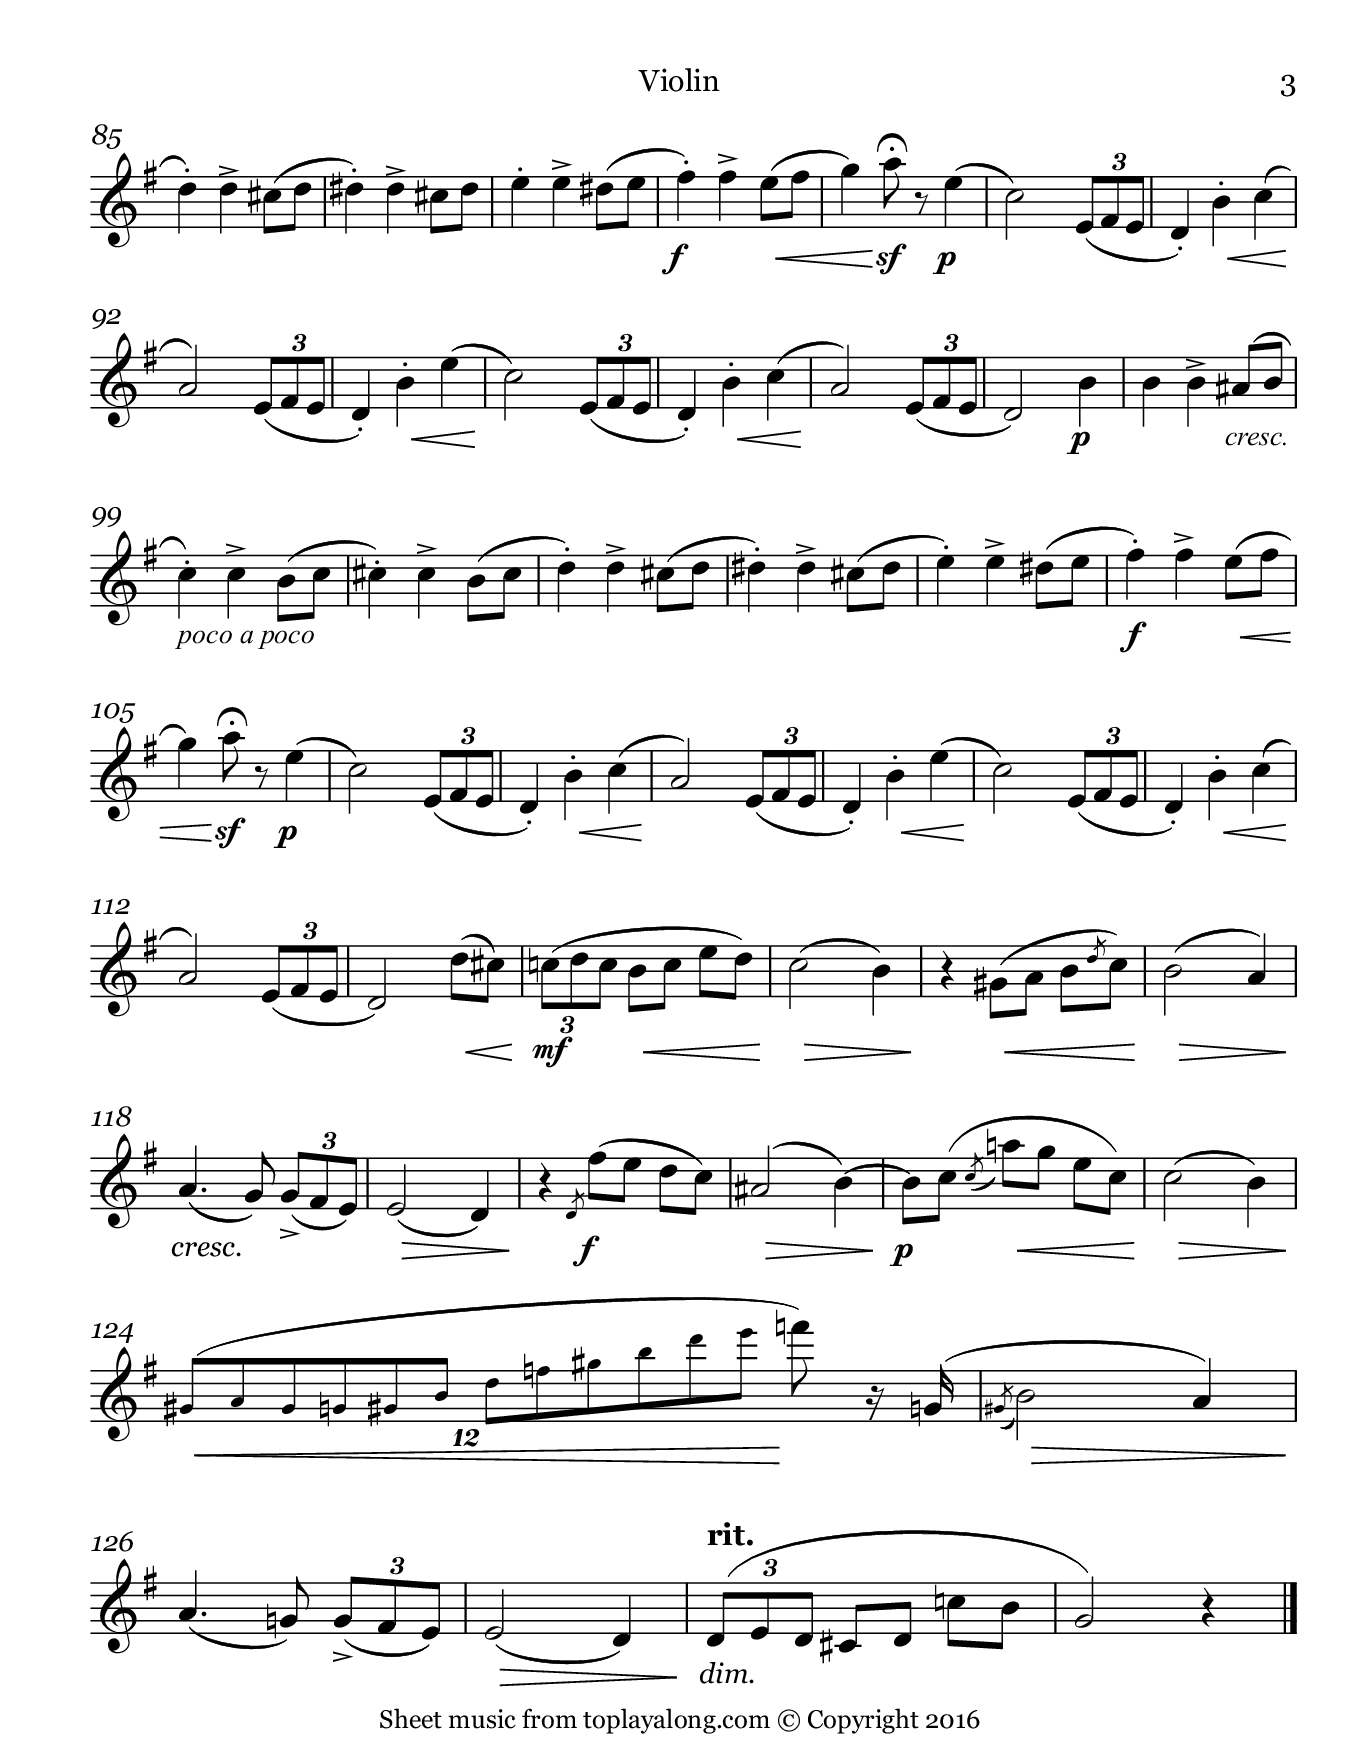 L'adieu Waltz Op. 69 No. 1 by Chopin. Sheet music for Violin, page 3.